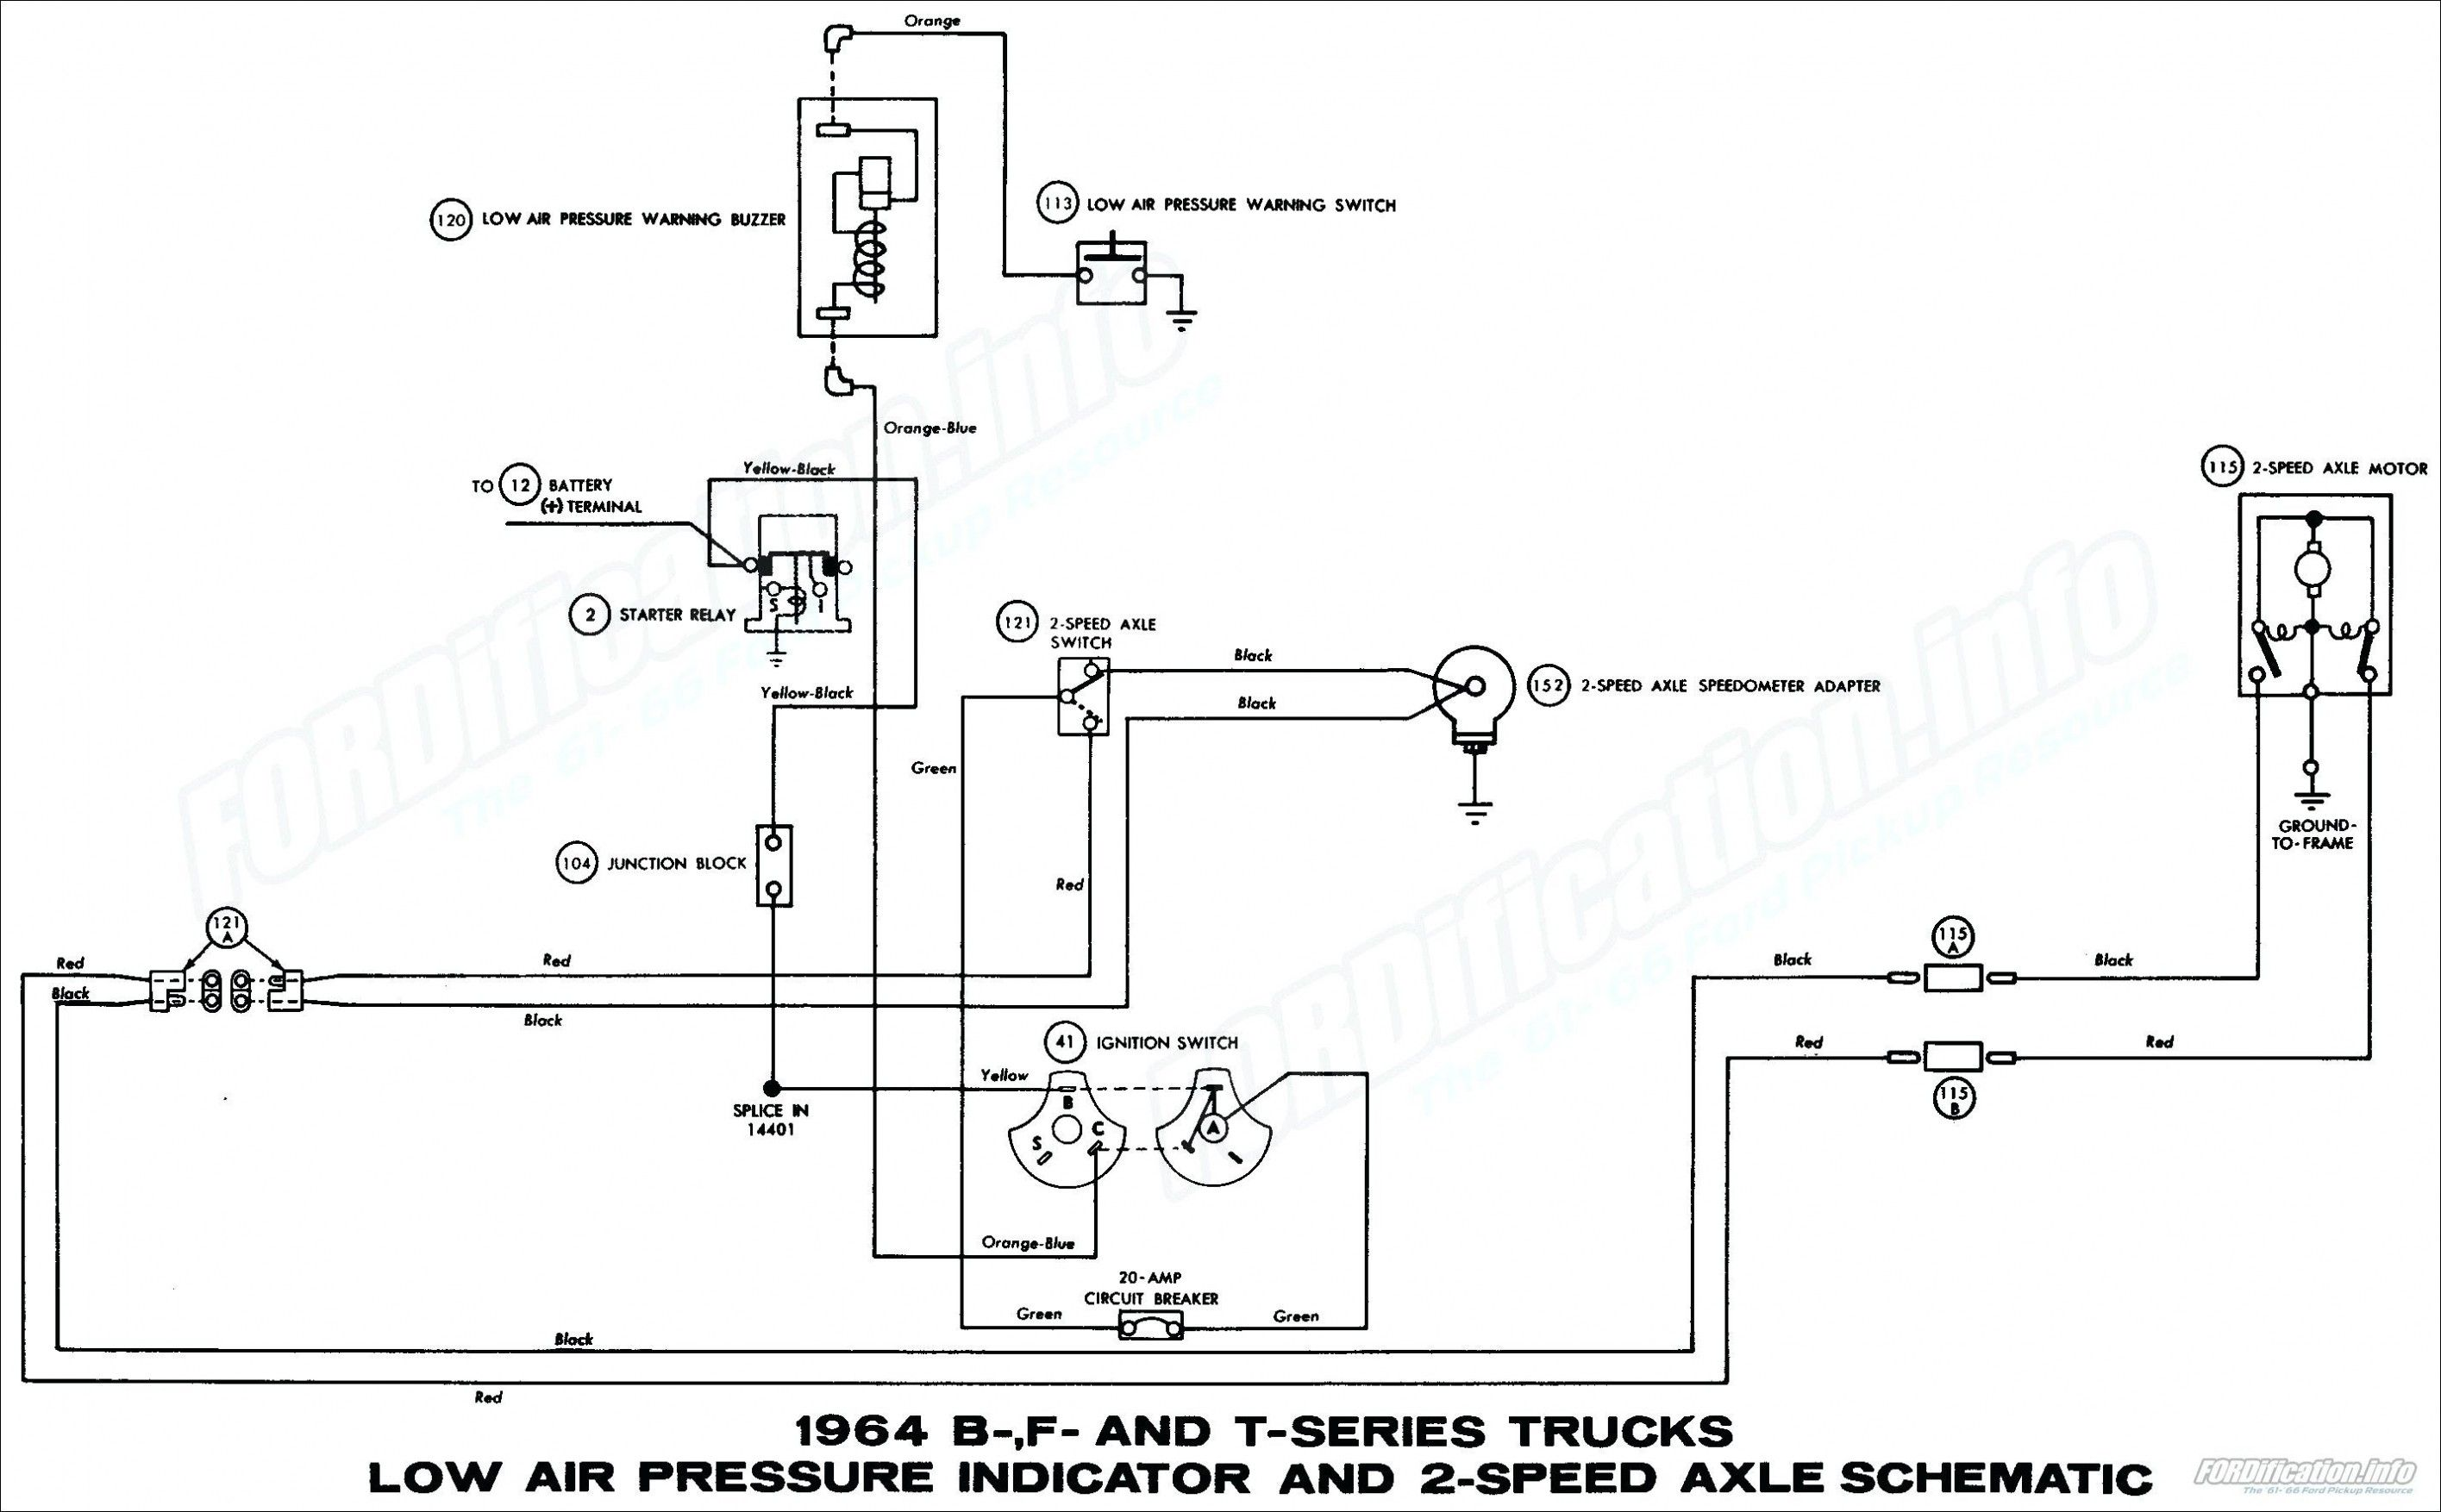 Unique Wiring Diagram Baldor Electric Motor Diagram Diagramsample Diagramtemplate Wiringdiagram Diagramchart Worksheet Diagram Design Diagram Air Brake